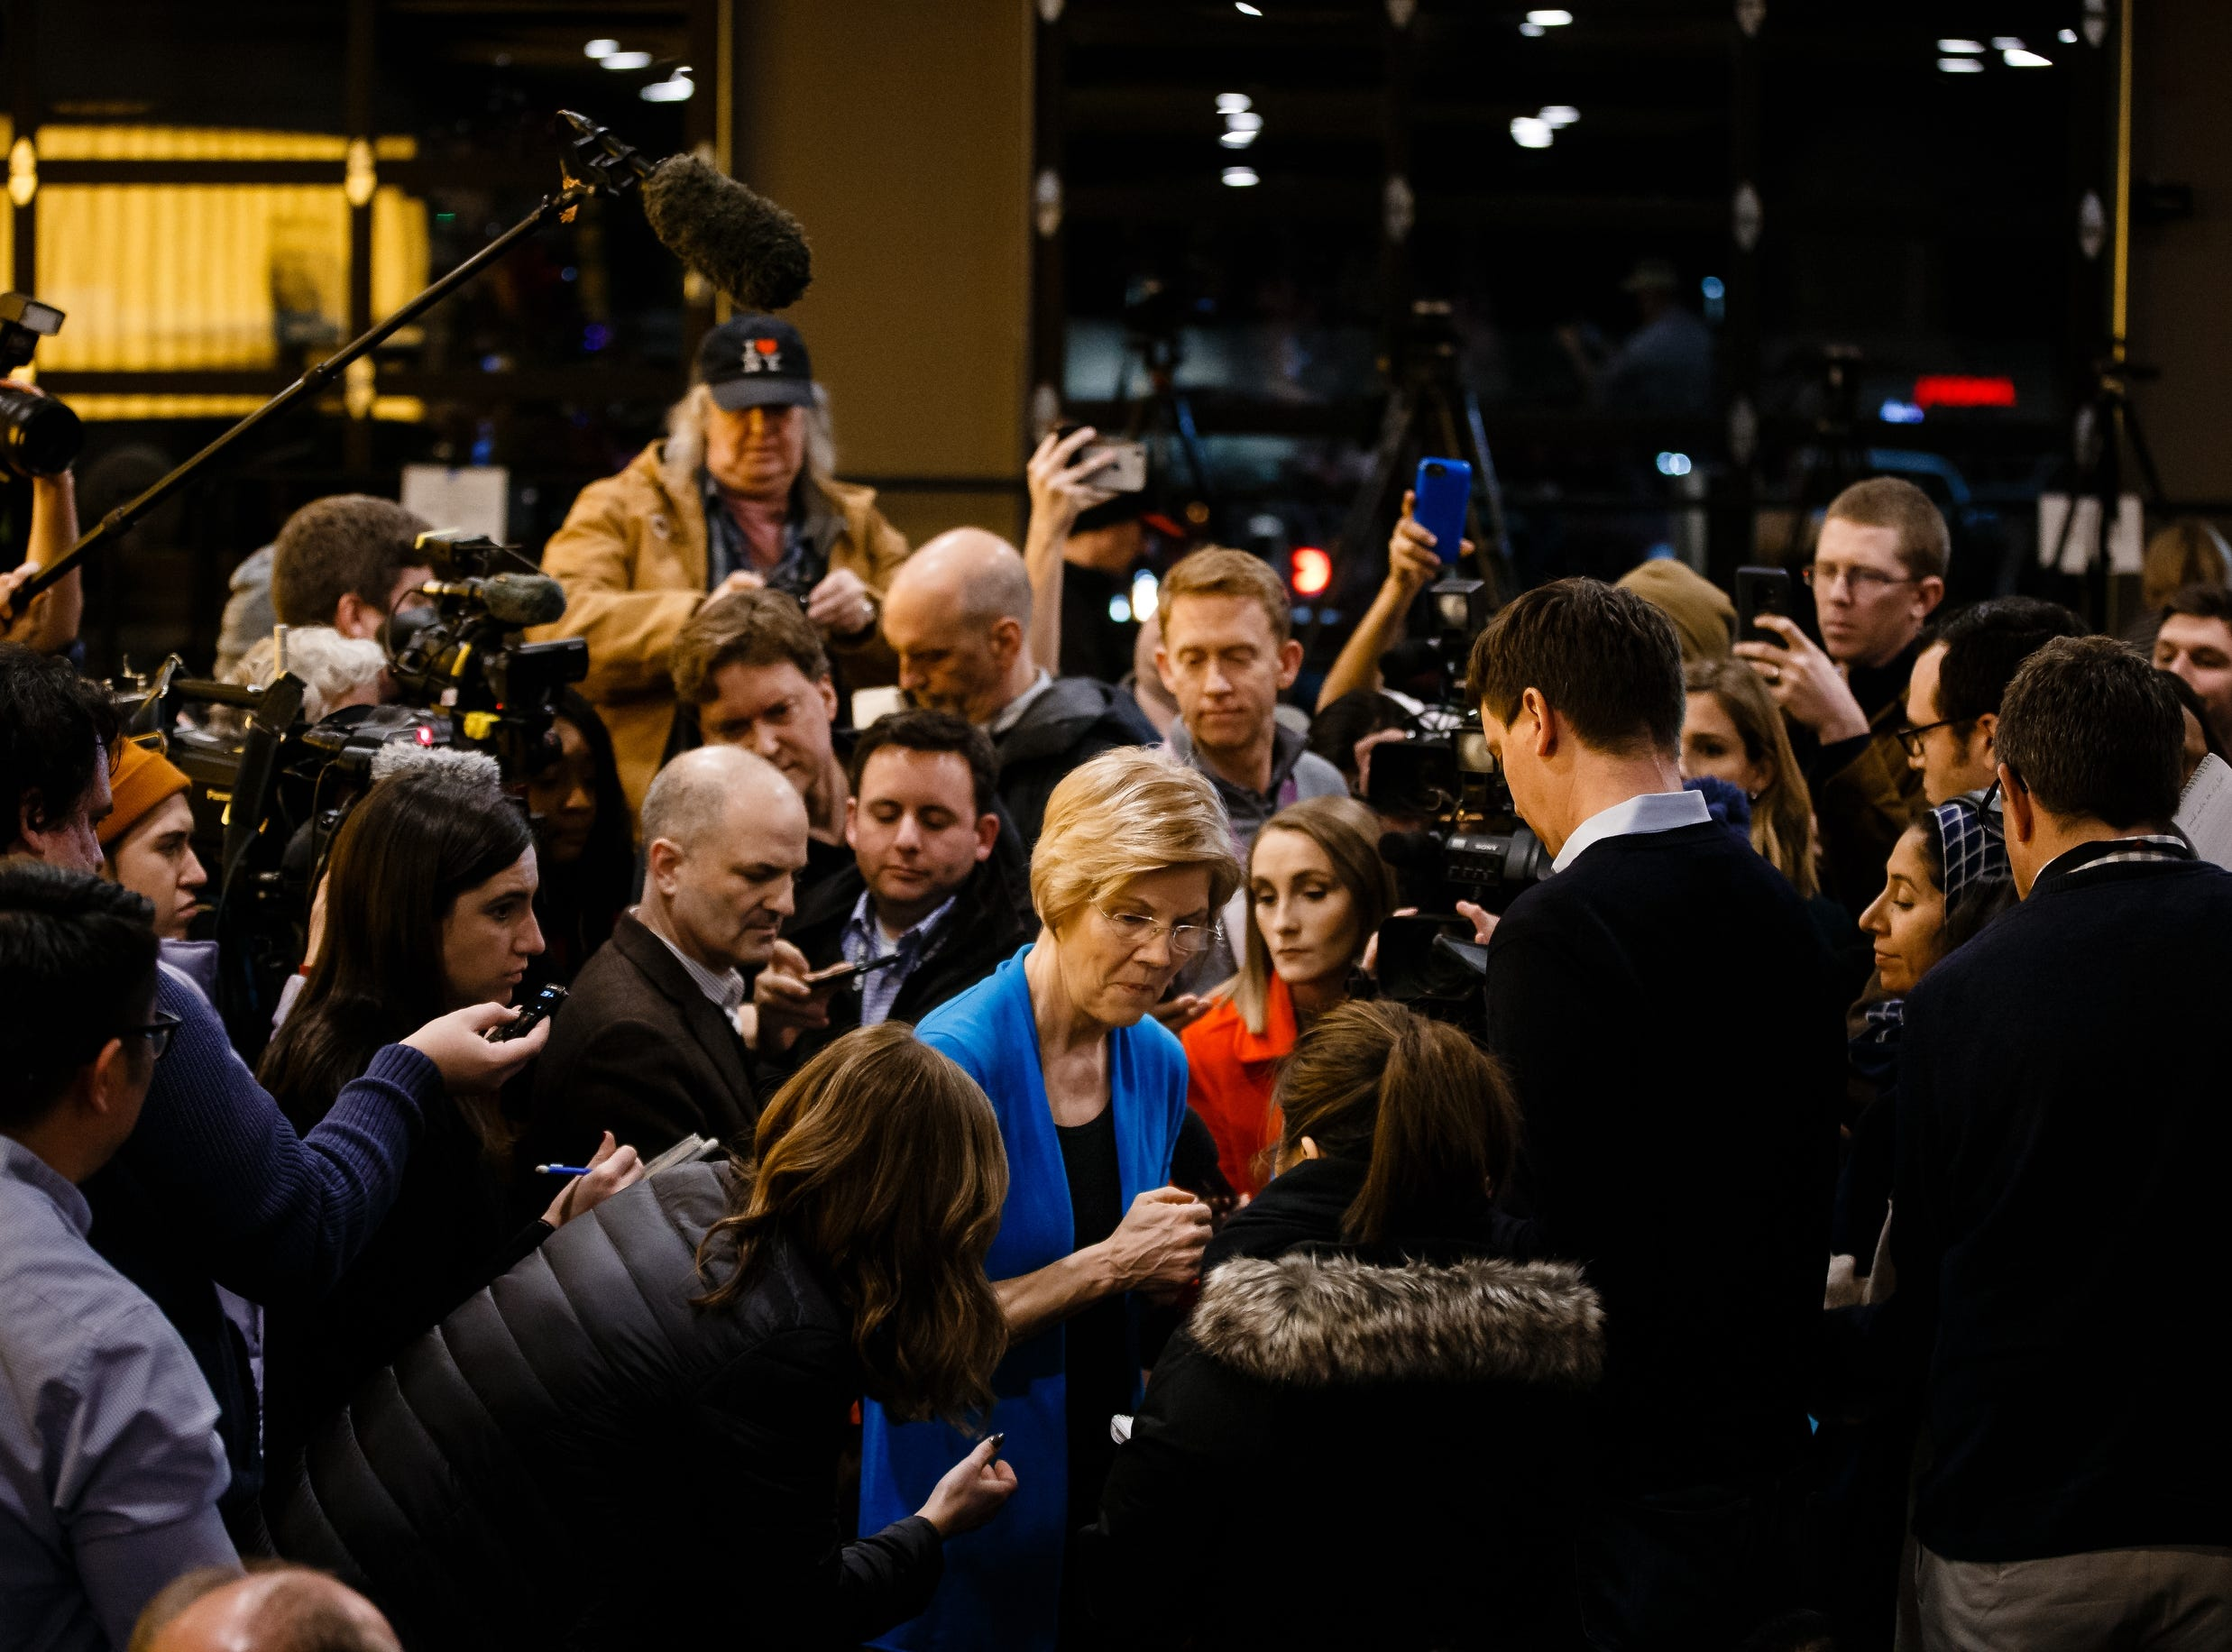 Sen. Elizabeth Warren speaks to members of the press pool during an event on her first trip through Iowa as a possible 2020 presidential candidate on Friday, Jan. 4, 2019, in Council Bluffs.